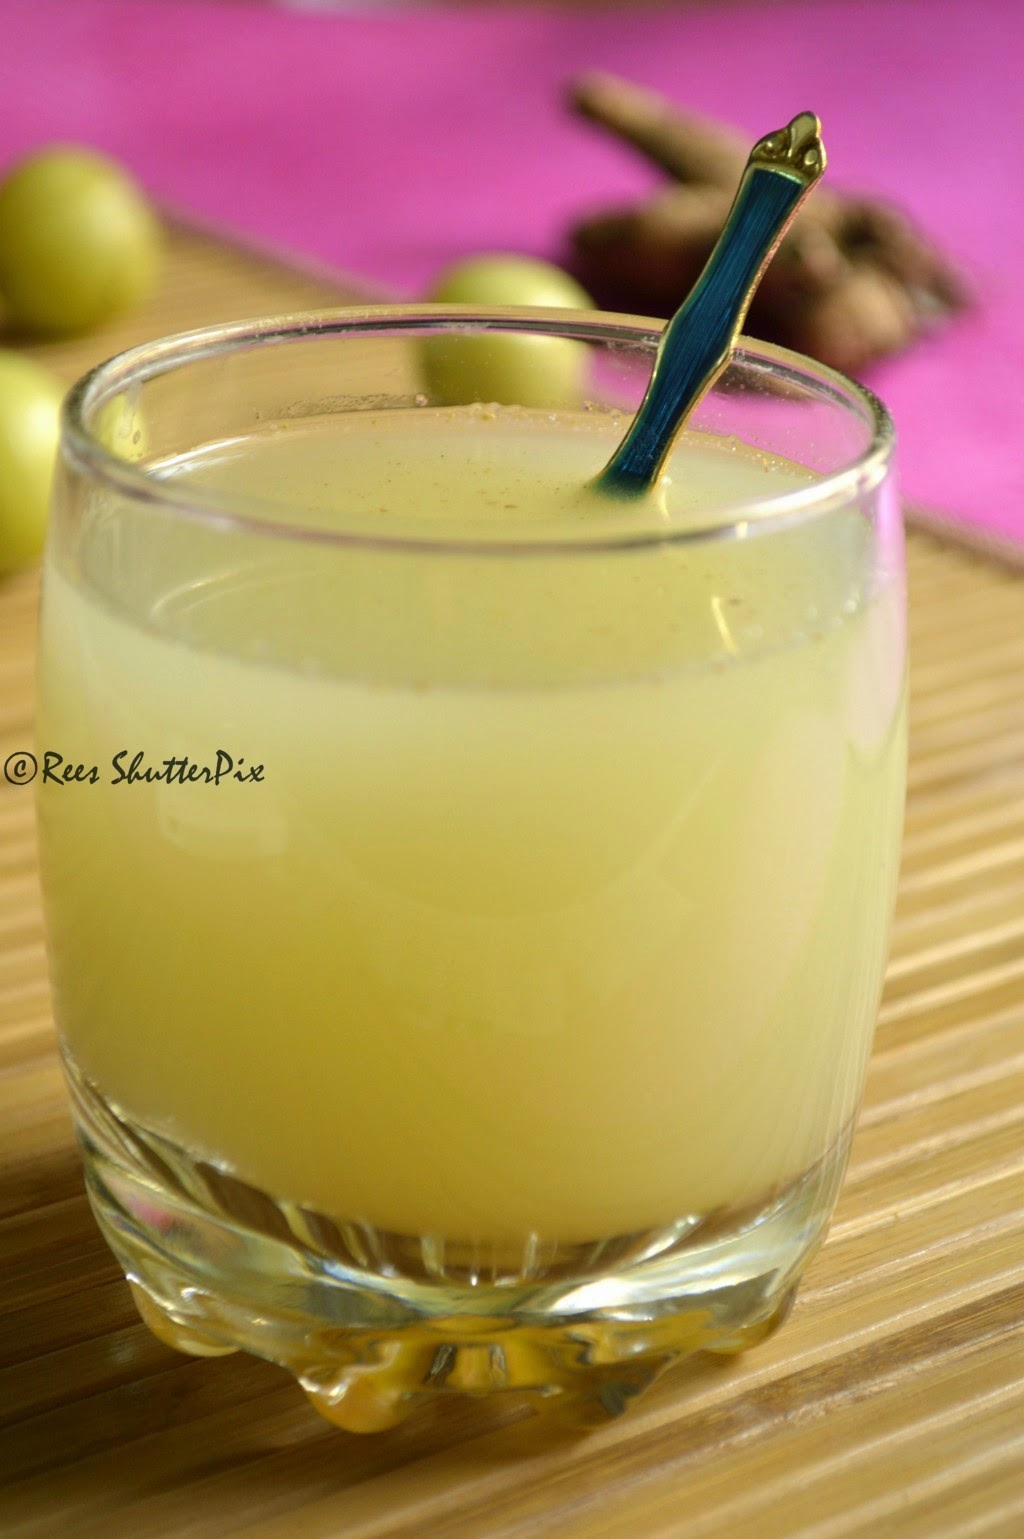 amla juice recipe, amla juice for weight loss, amla ginger detox drink recipe, amla drink recipes, easy weightloss drinks, indian gooseberry drink recipes